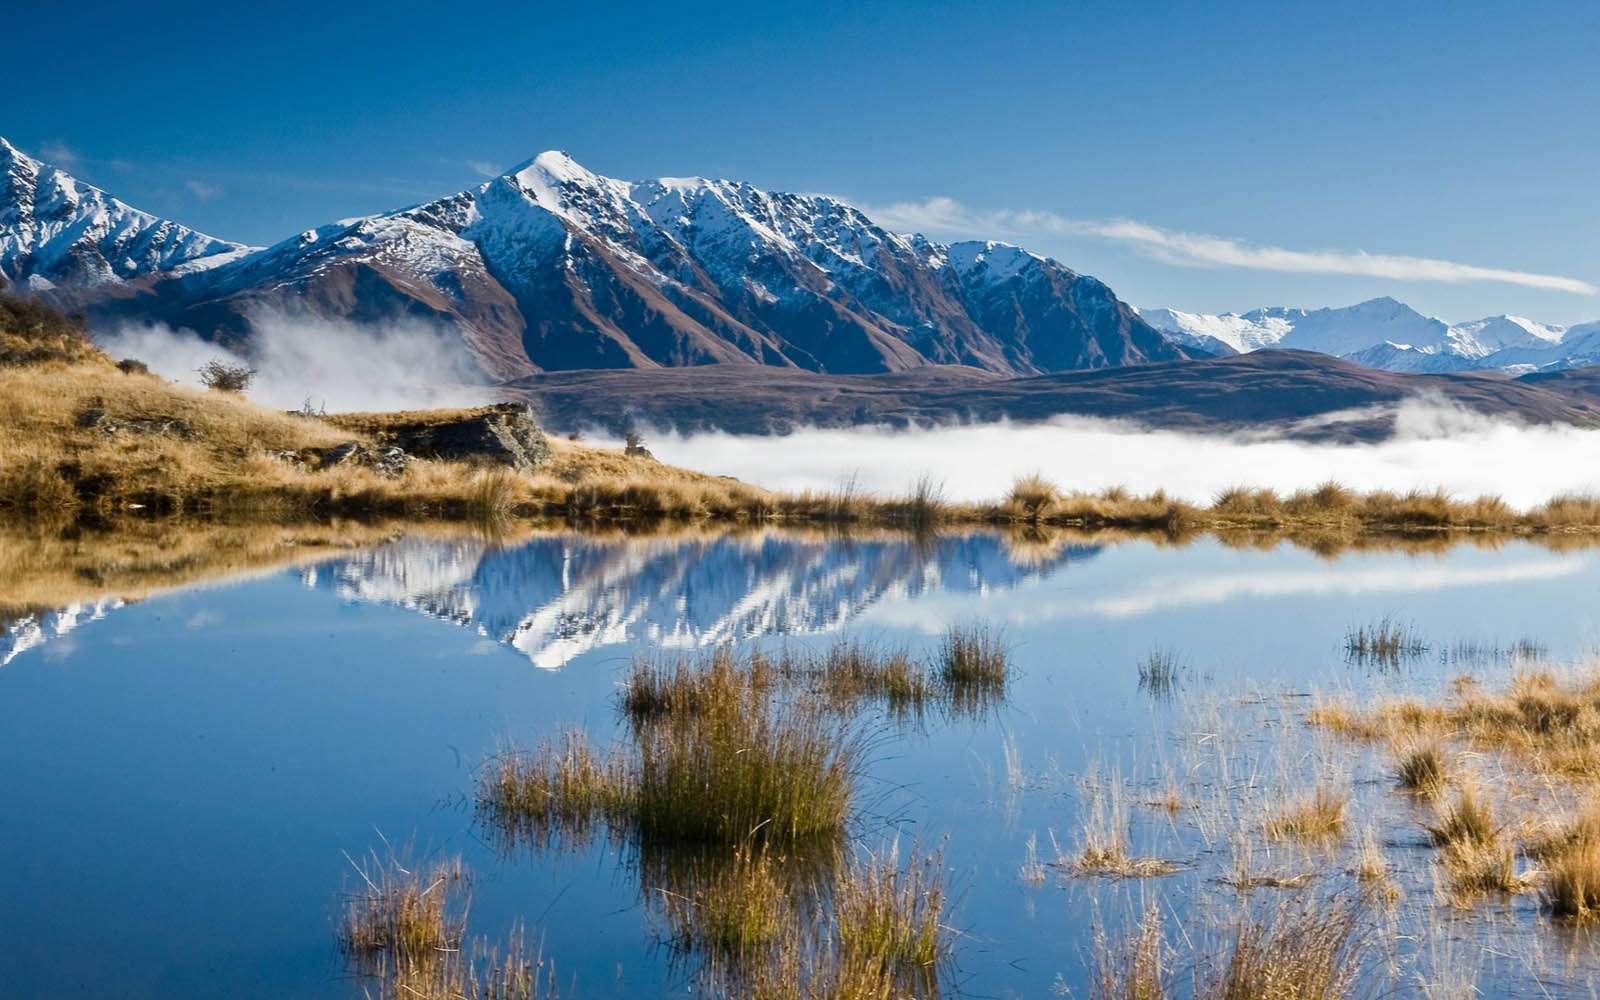 Wallpapers snow mountains wallpapers for Nz landscape